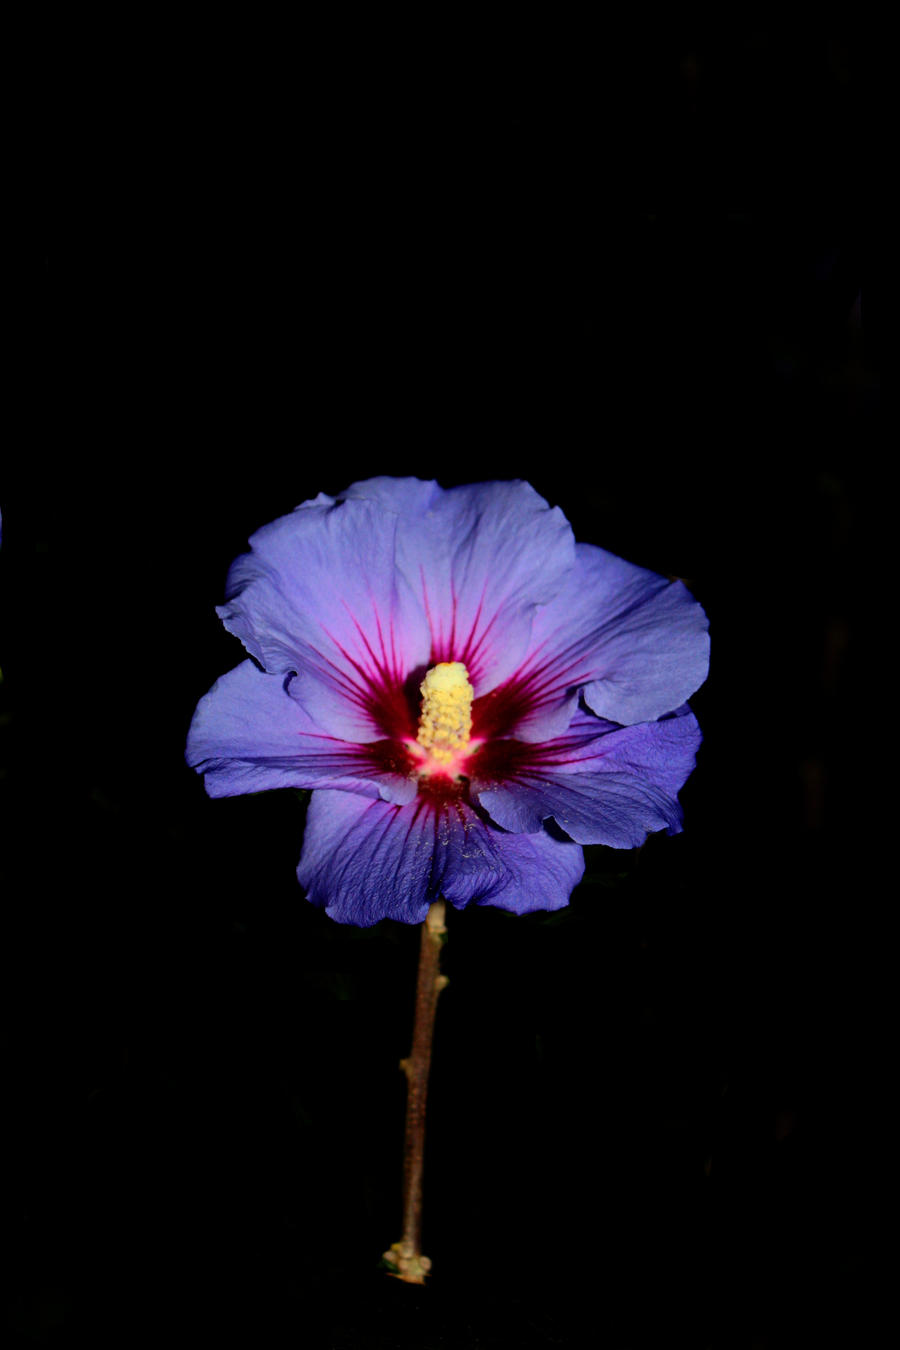 Midnight Flowers | WritersCafe.org | The Online Writing Community